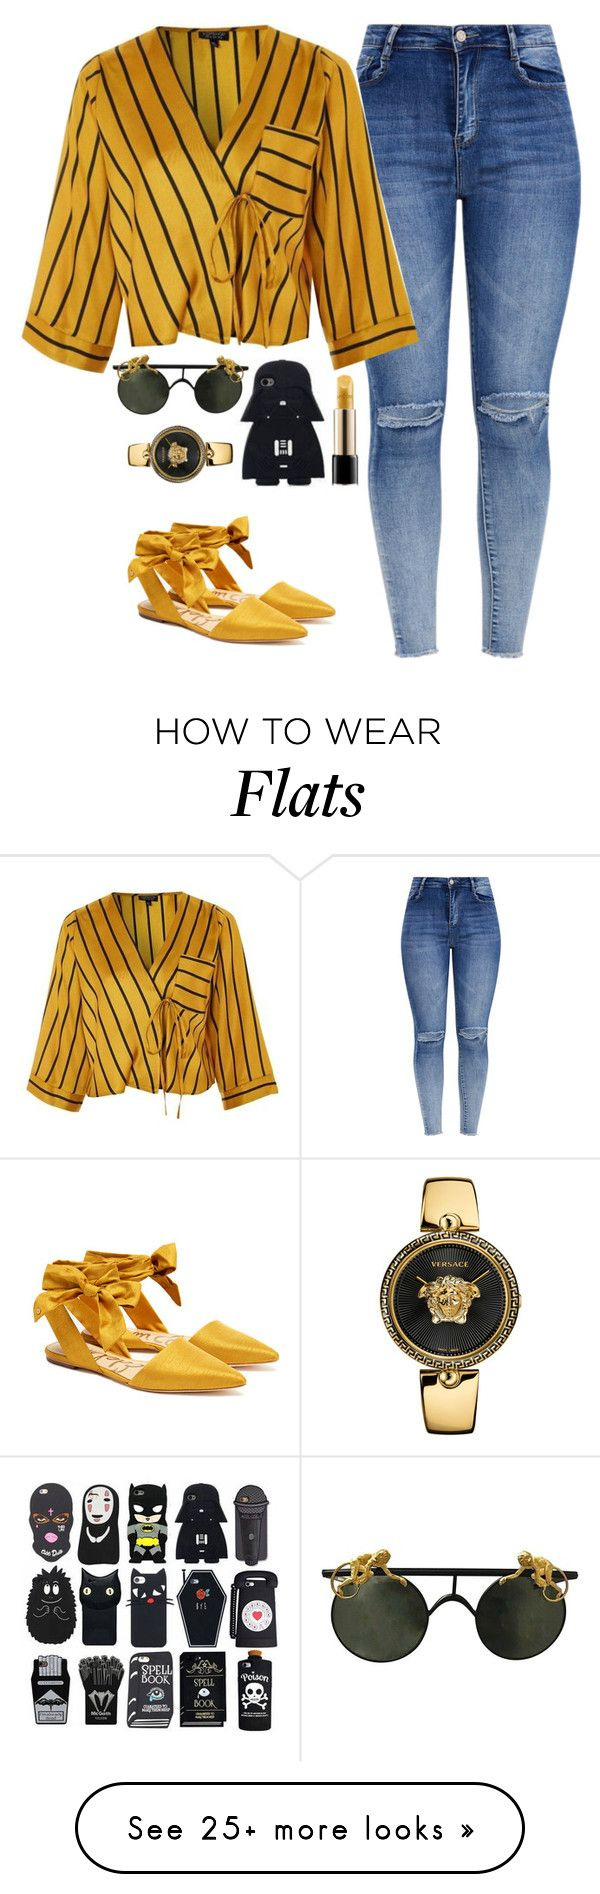 """""""Catching Fireflies"""" by quonton on Polyvore featuring Topshop, Lancôme, Versace and Sam Edelman"""